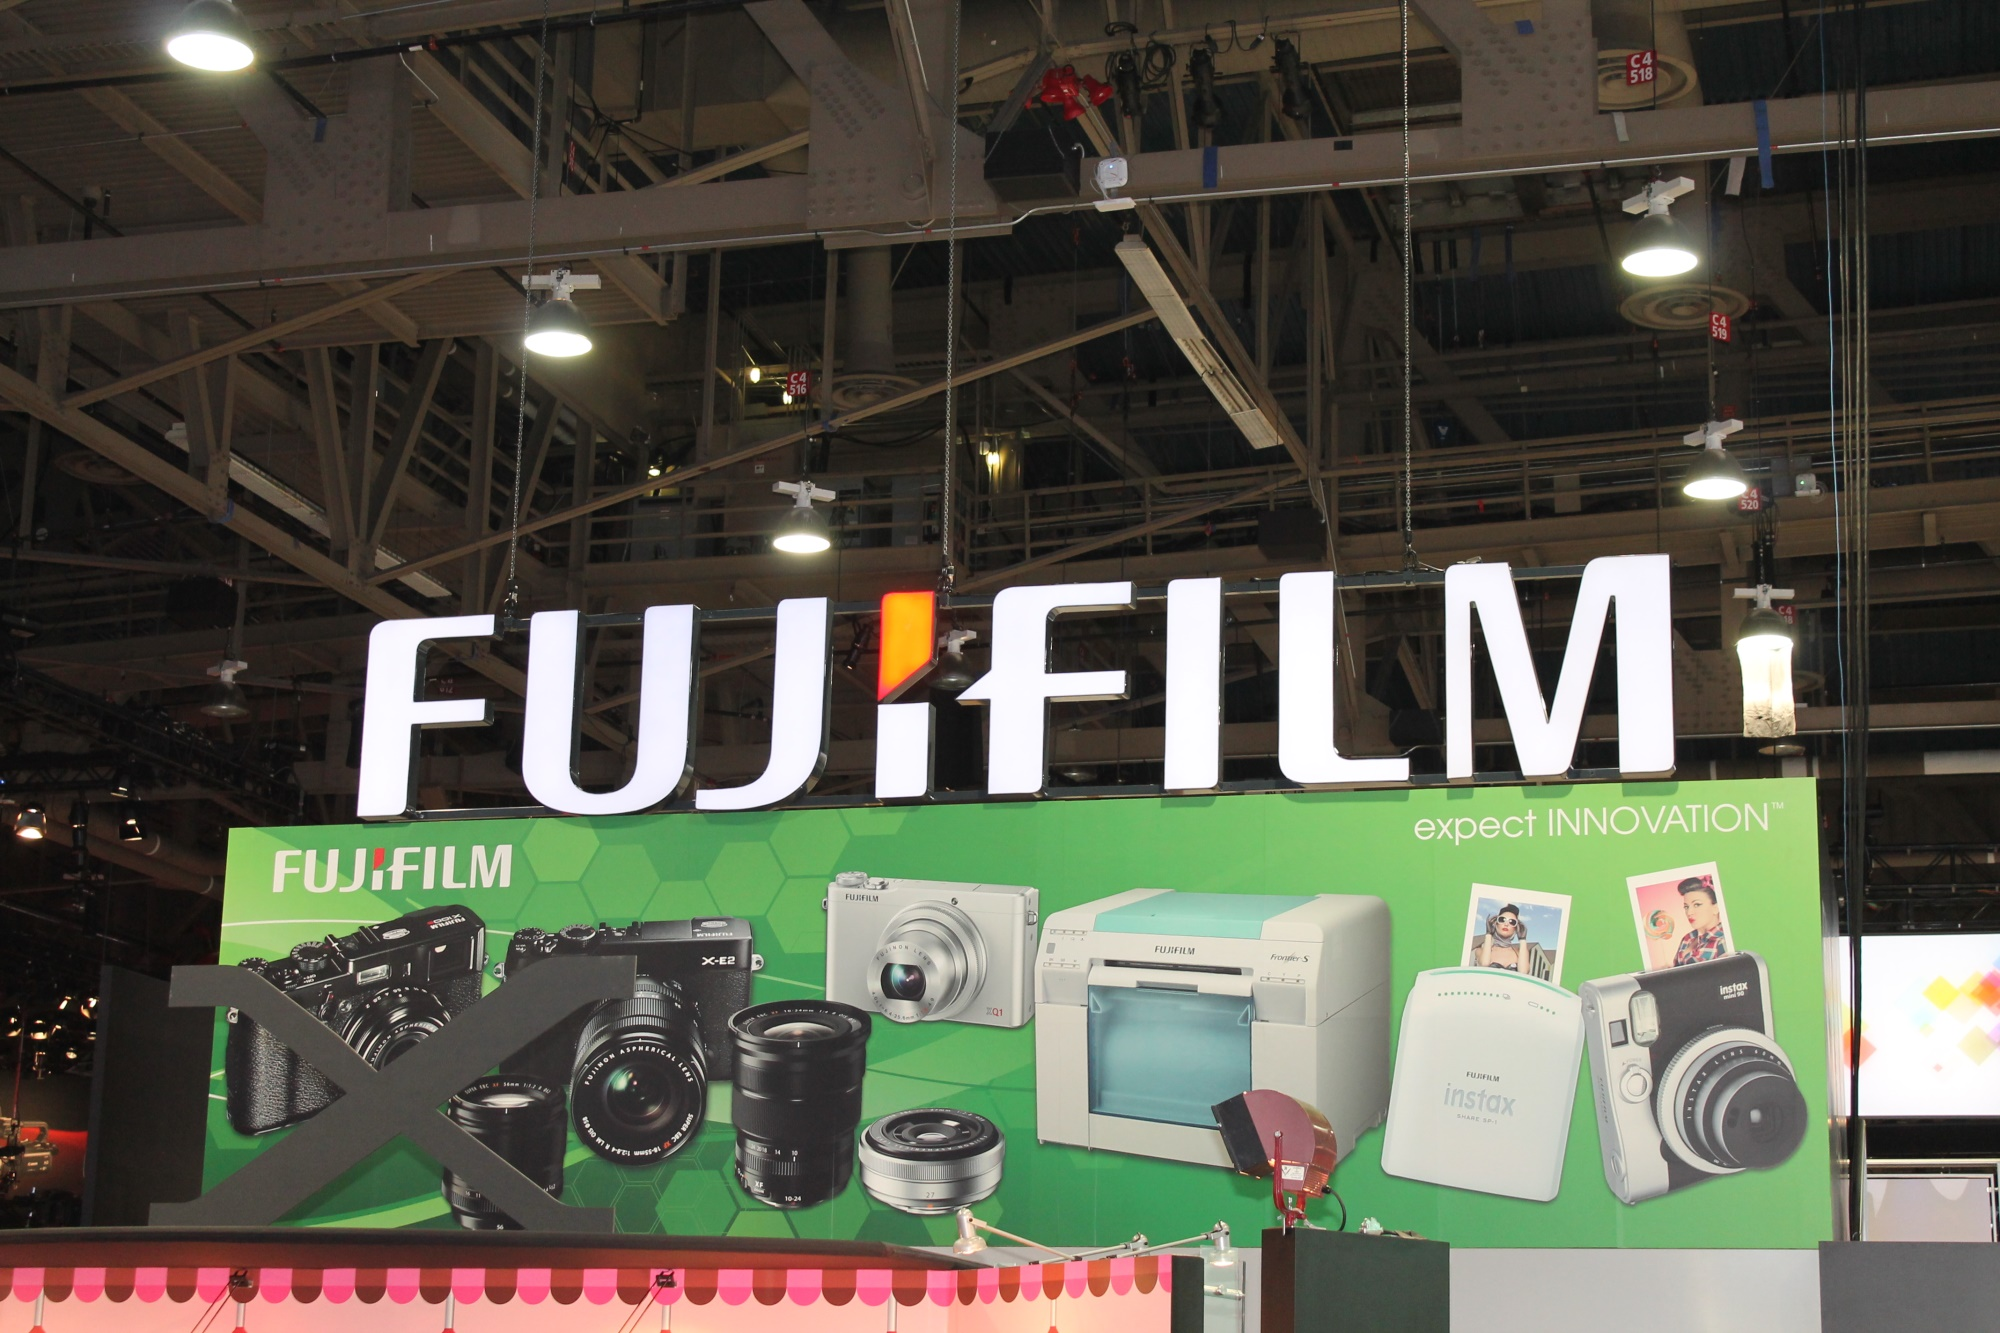 Latest launches from Fujifilm after CES'14